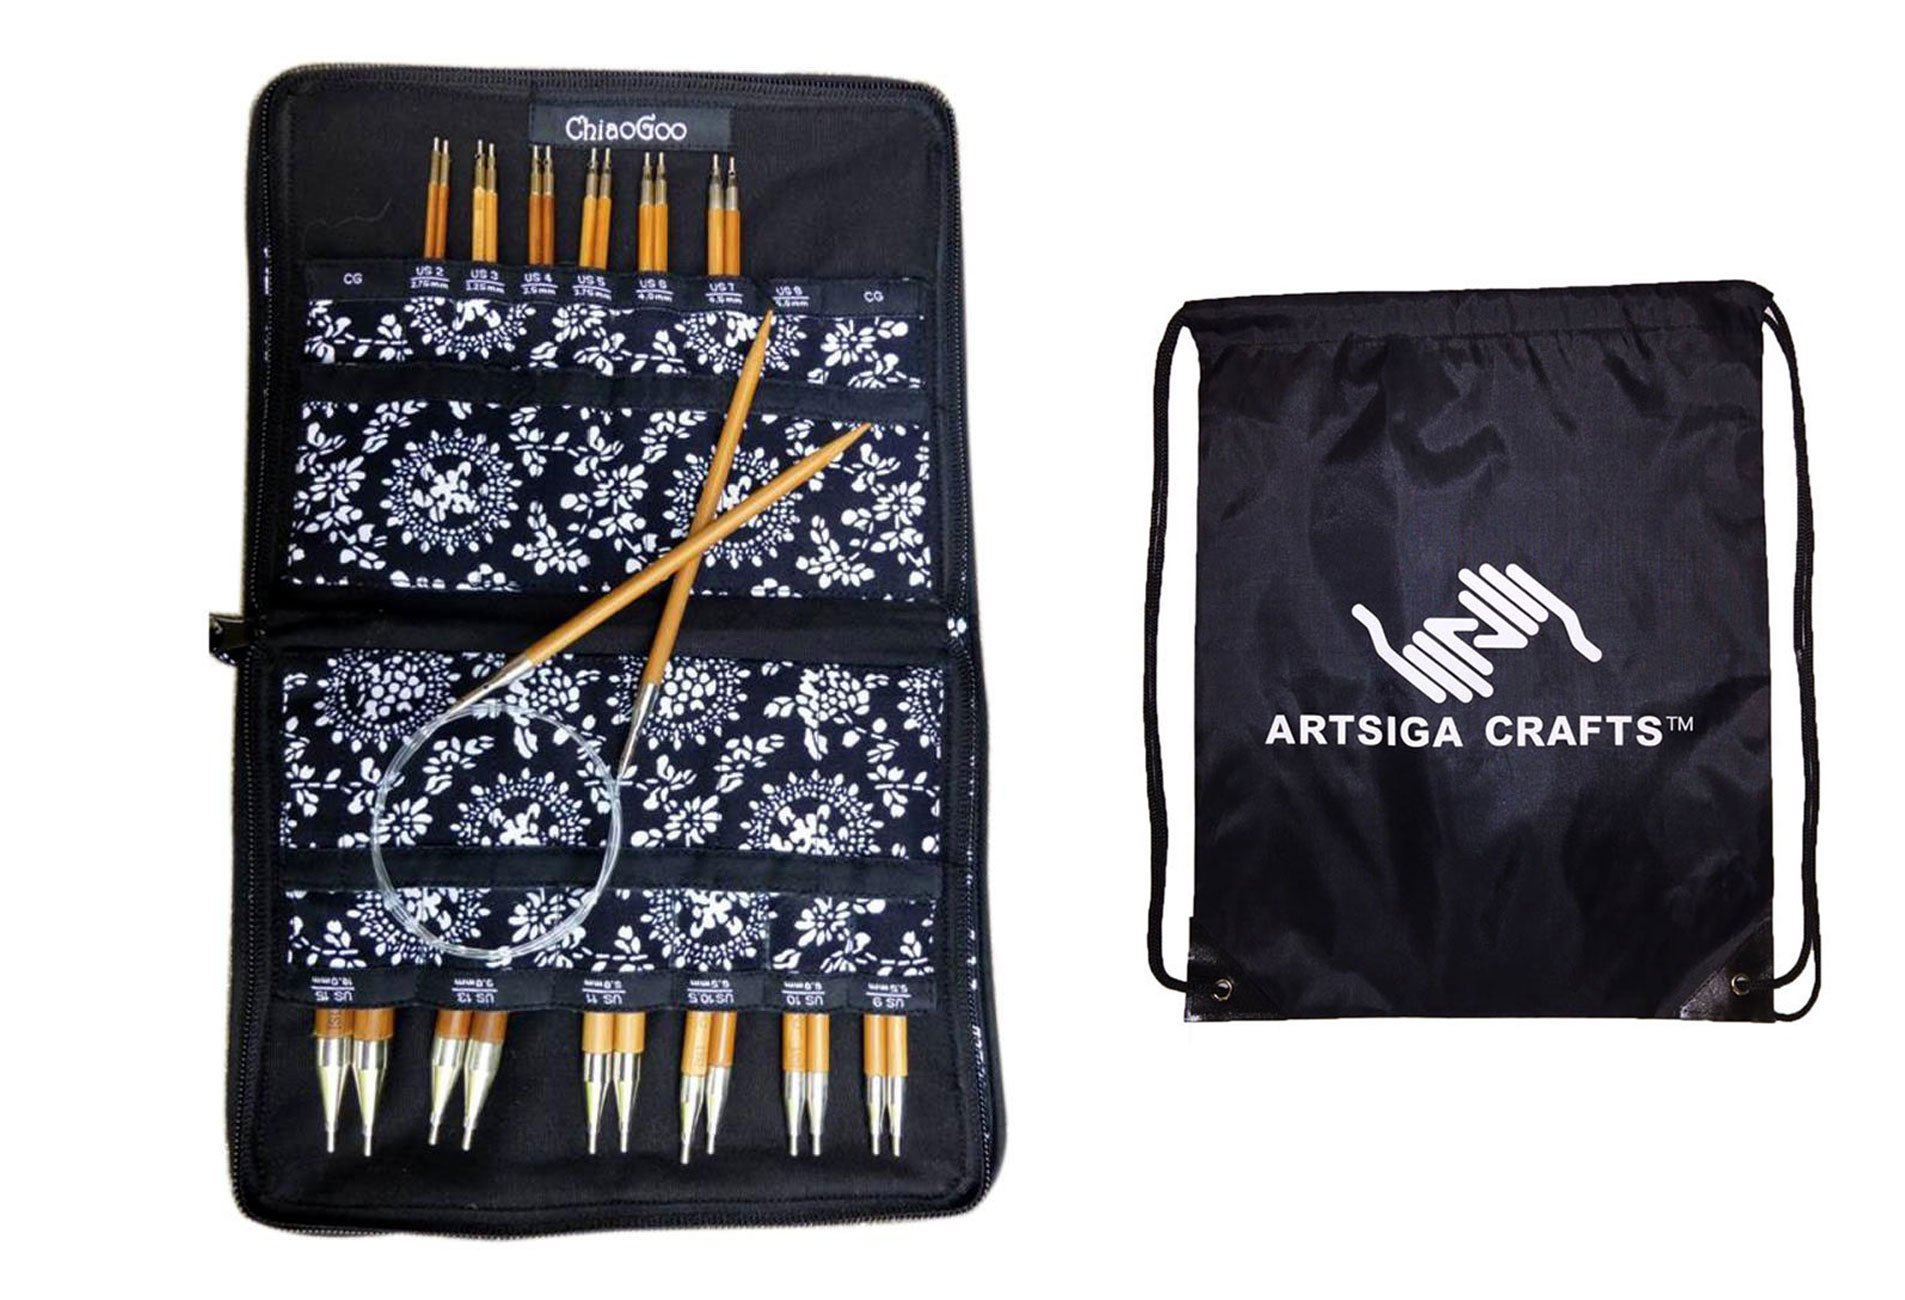 ChiaoGoo Spin Interchangeable Knitting Needle Set Complete: Size US 2 (2.75mm)-Size US 15 (10mm) Bundle with 1 Artsiga Crafts Project Bag 2500-C by ChiaoGoo Knitting Needles (Image #1)